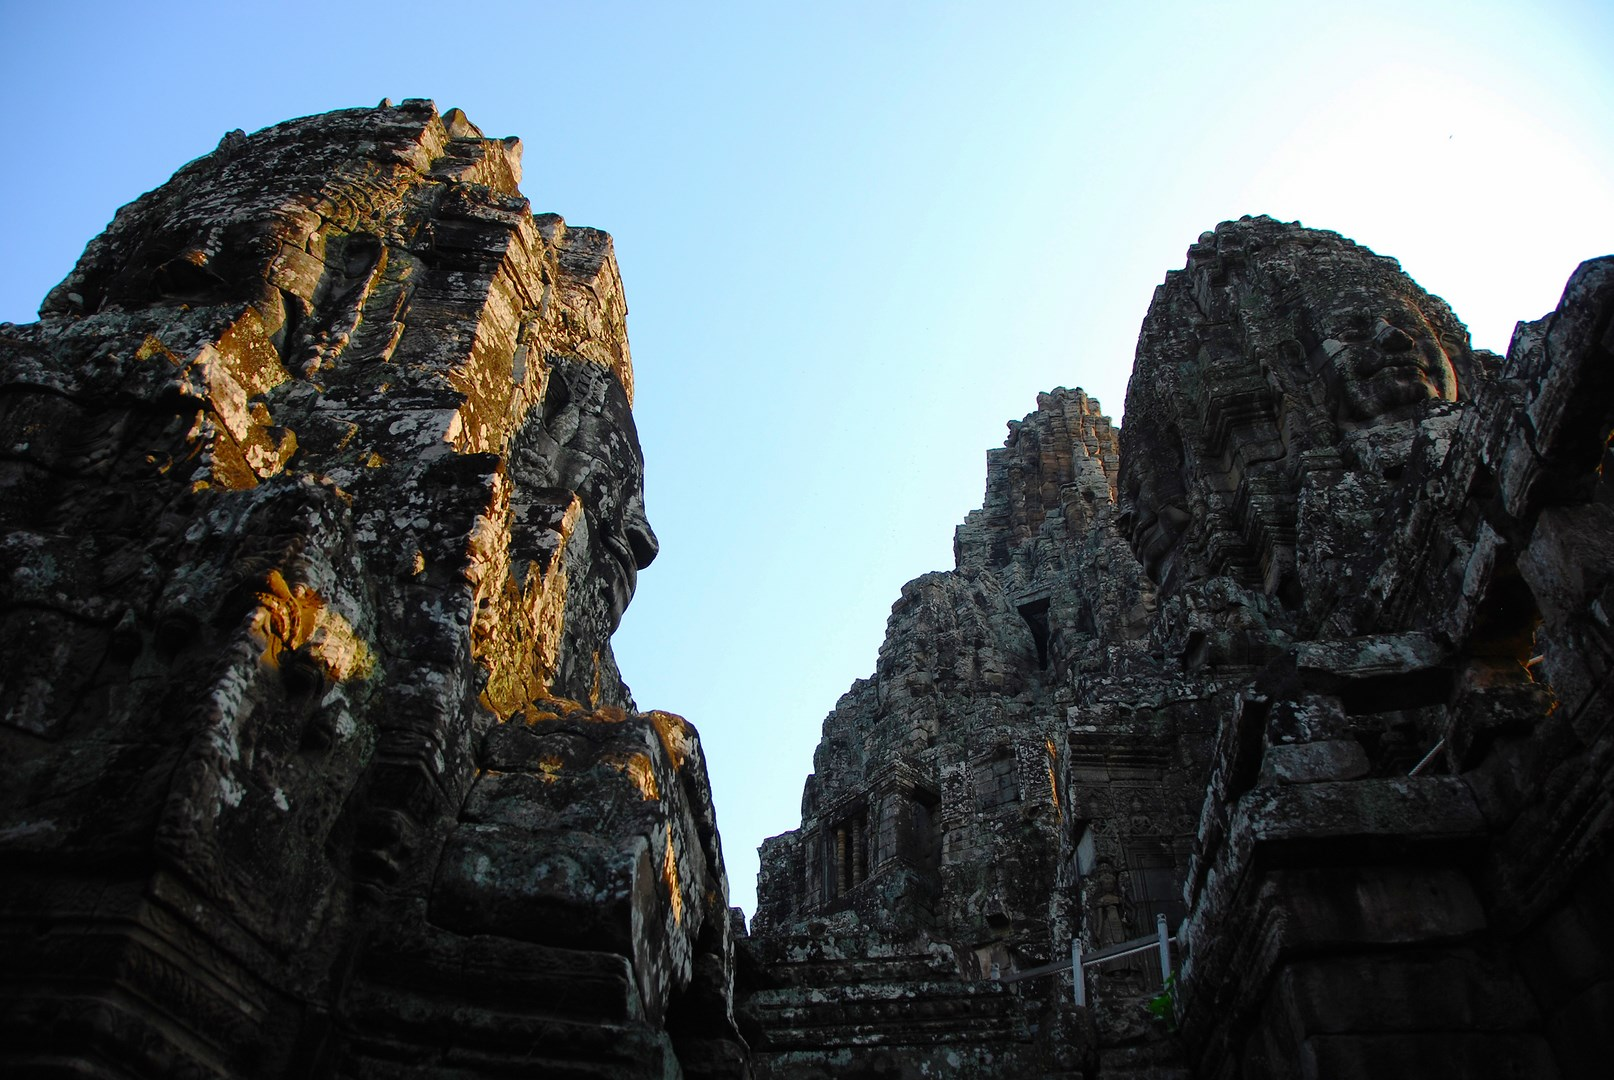 holly_siemreap_bayontemple-Copy.jpg